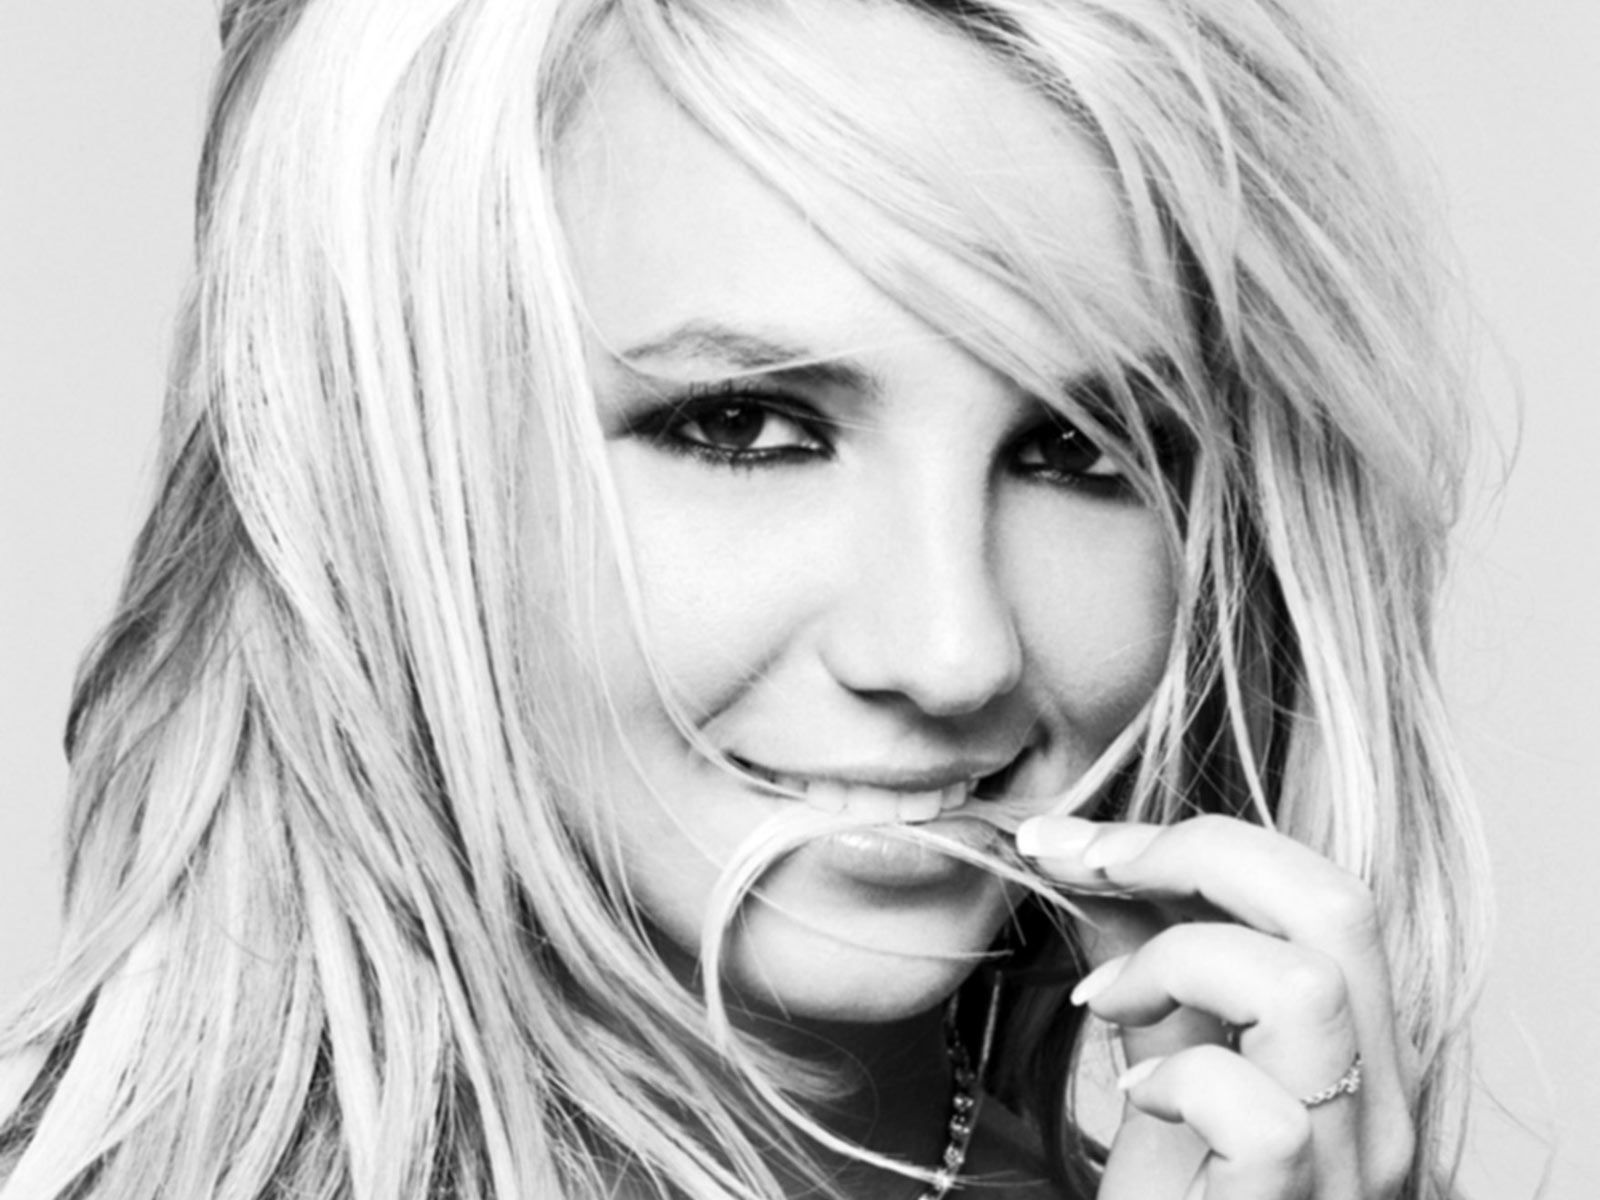 Britney Spears wallpaper